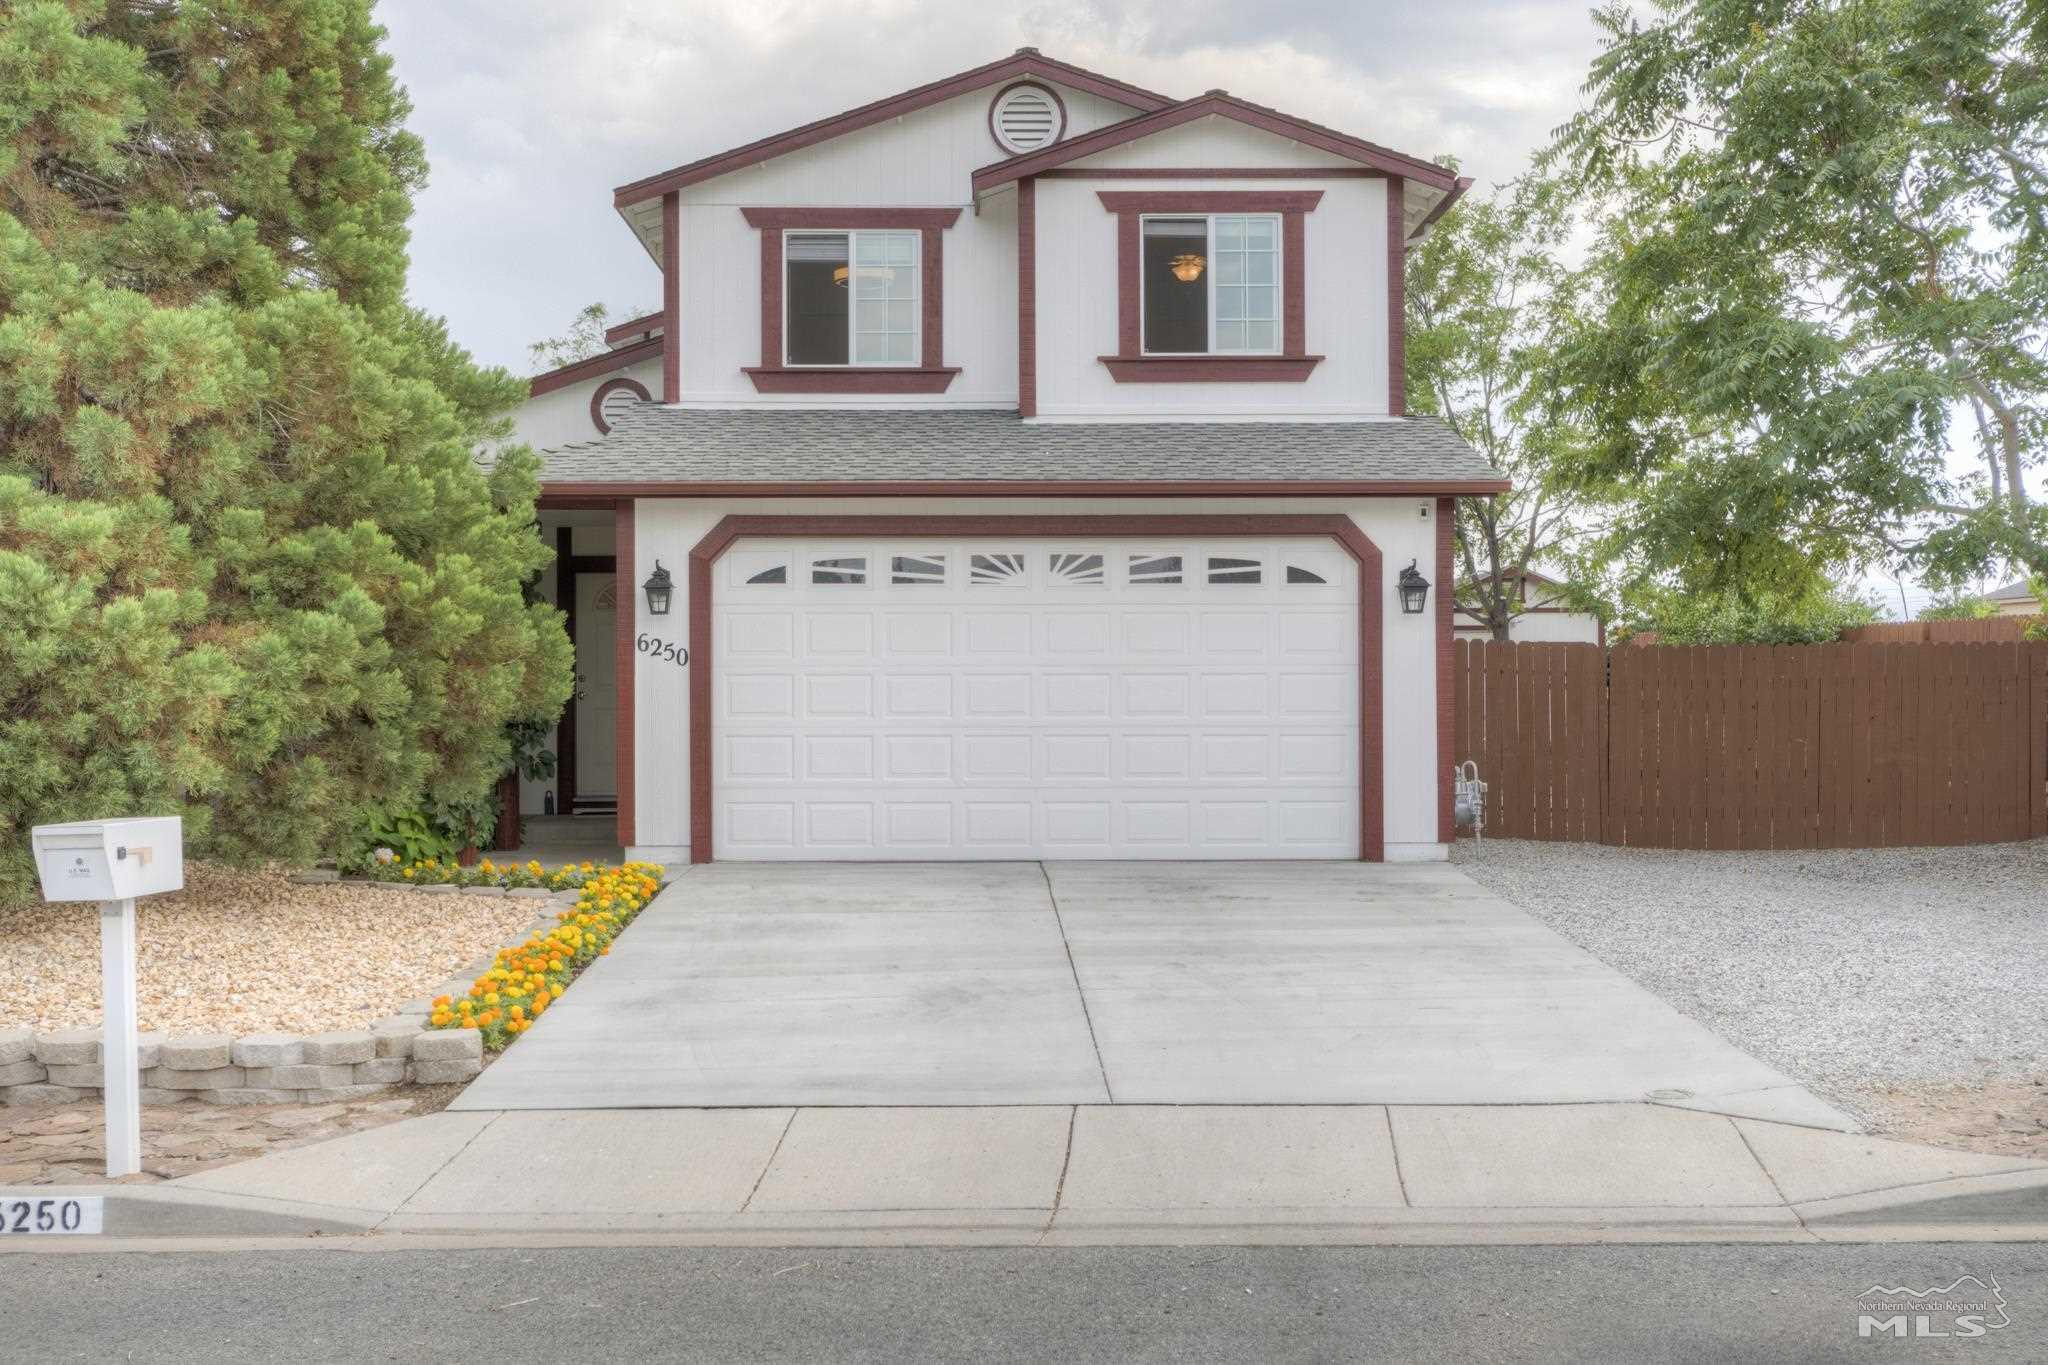 Image for 6250 W Chinook Court, Sun Valley, NV 89433